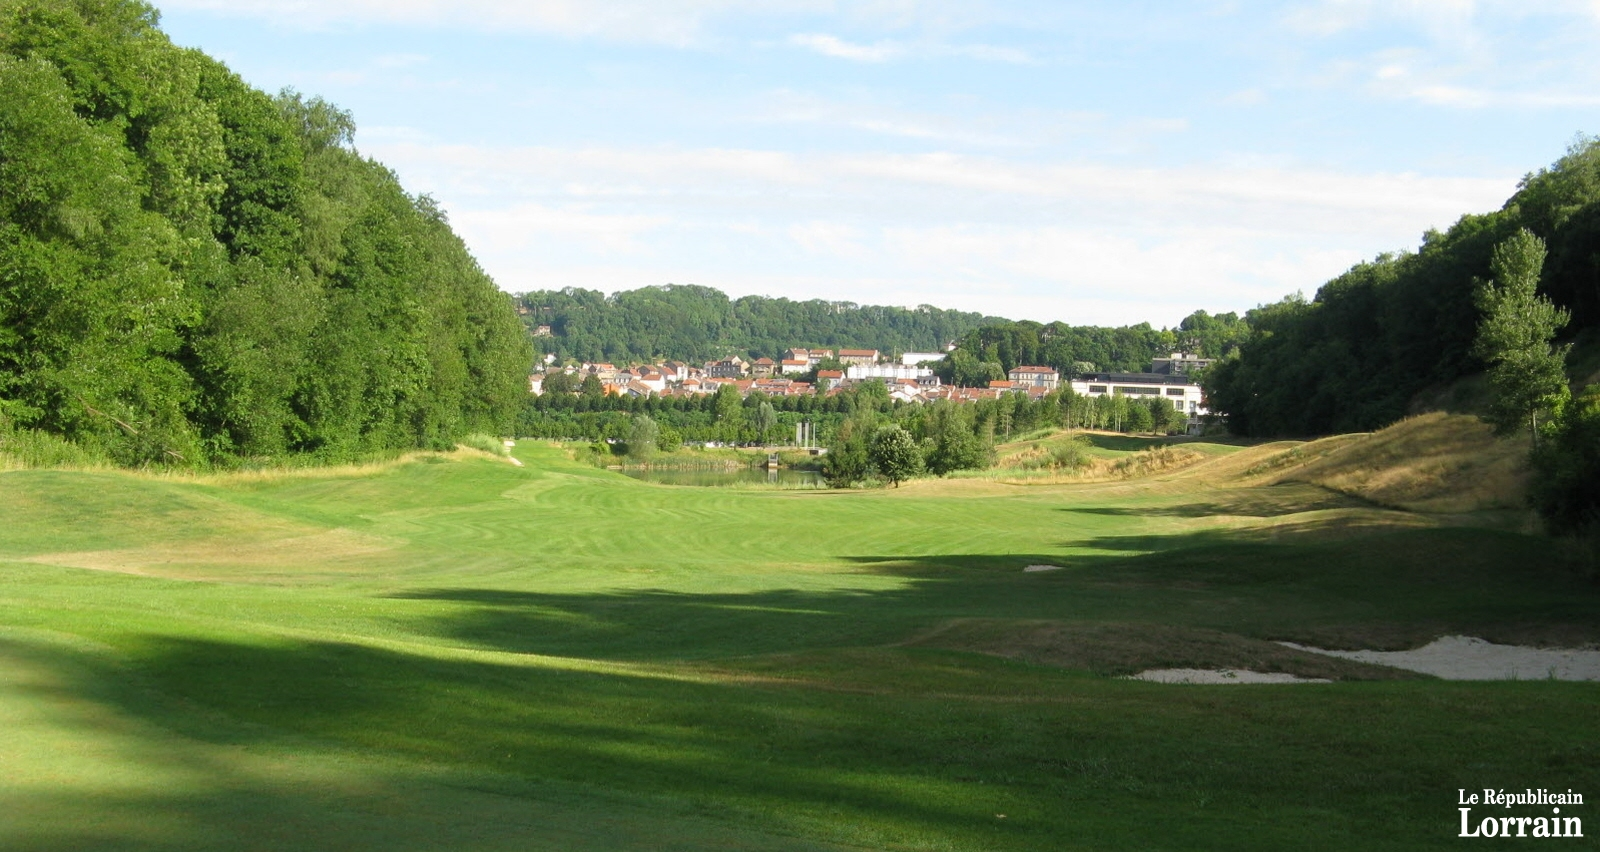 le-golf-international-de-longwy-proposait-deja-un-9-trous-depuis-le-1-er-septembre-le-18-trous-est-ouvert-photo-rl.jpg